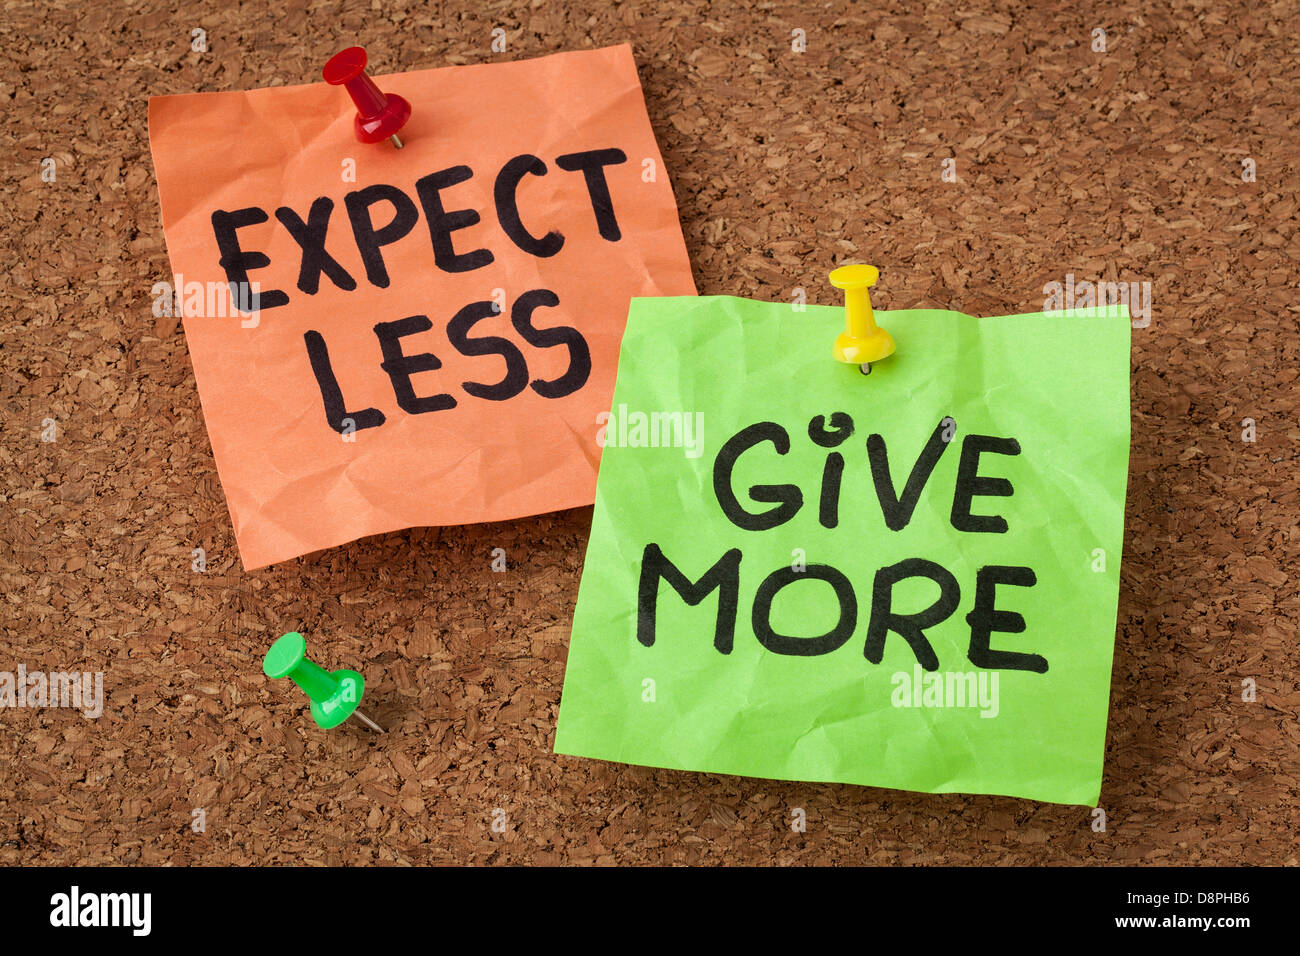 expect less, give more - motivation or self improvement concept - handwriting on colorful sticky notes - Stock Image